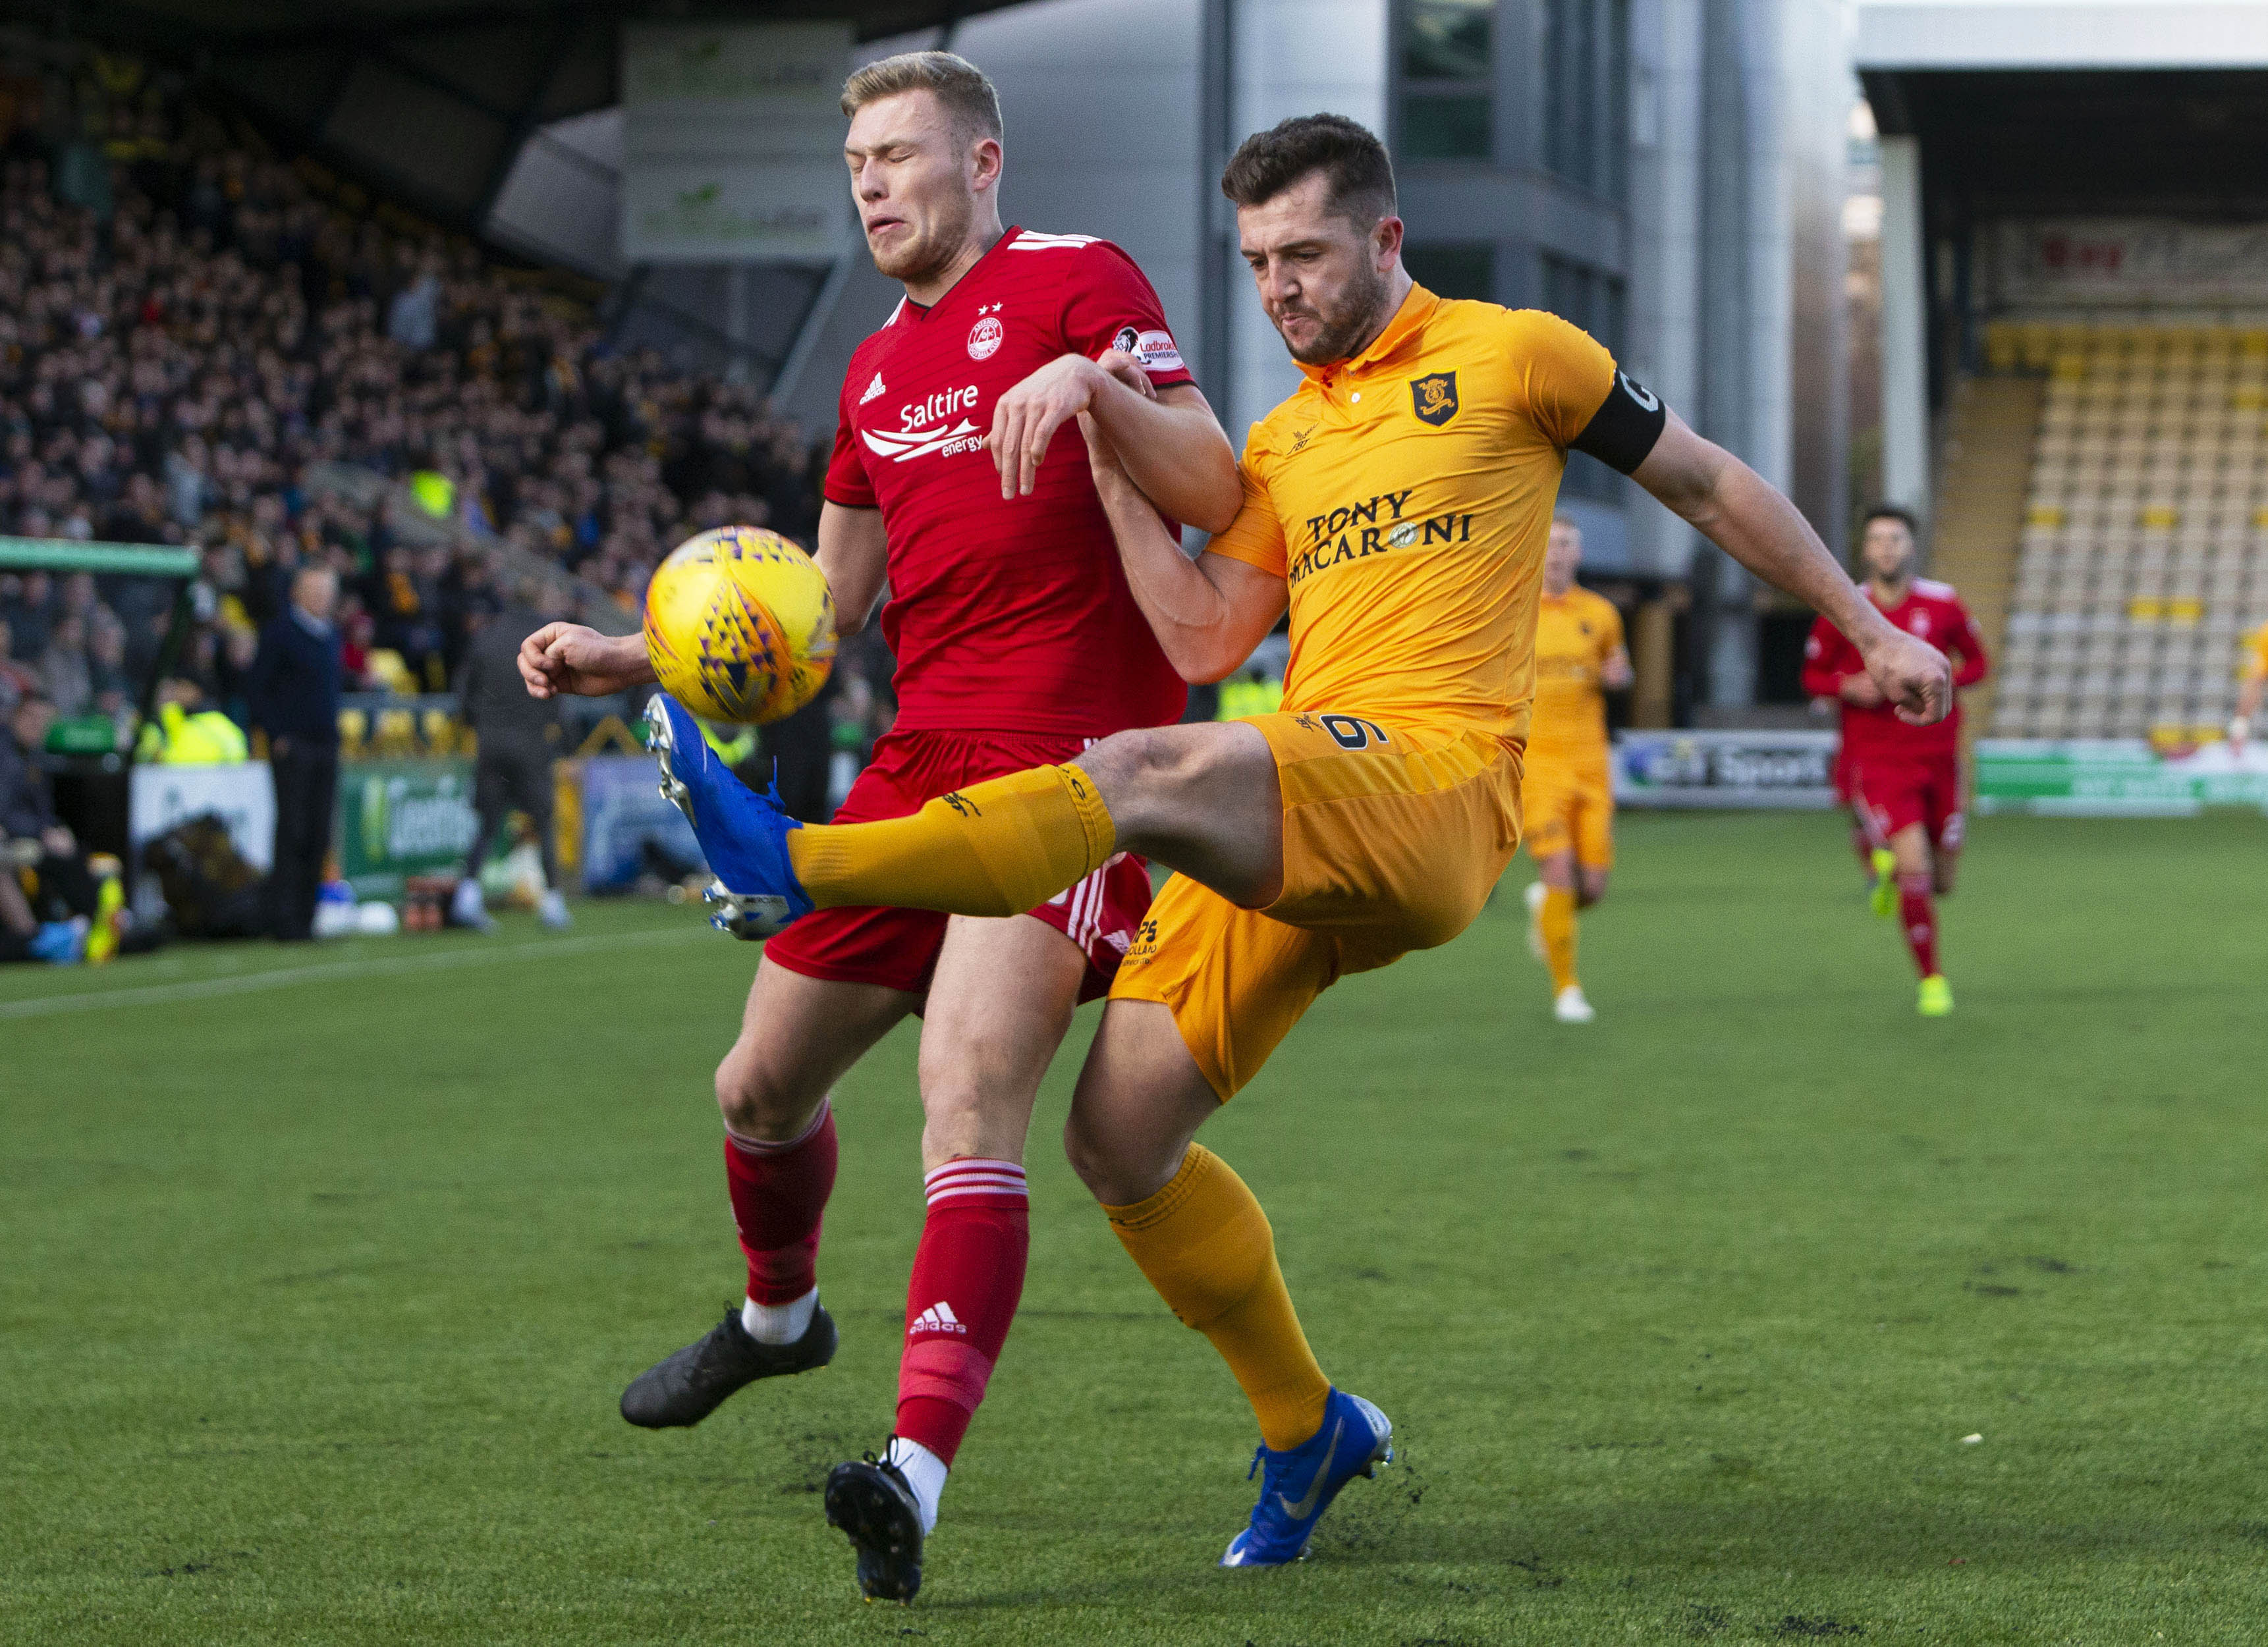 Livingston's Craig Halkett (R) defends from the oncoming Sam Cosgrove